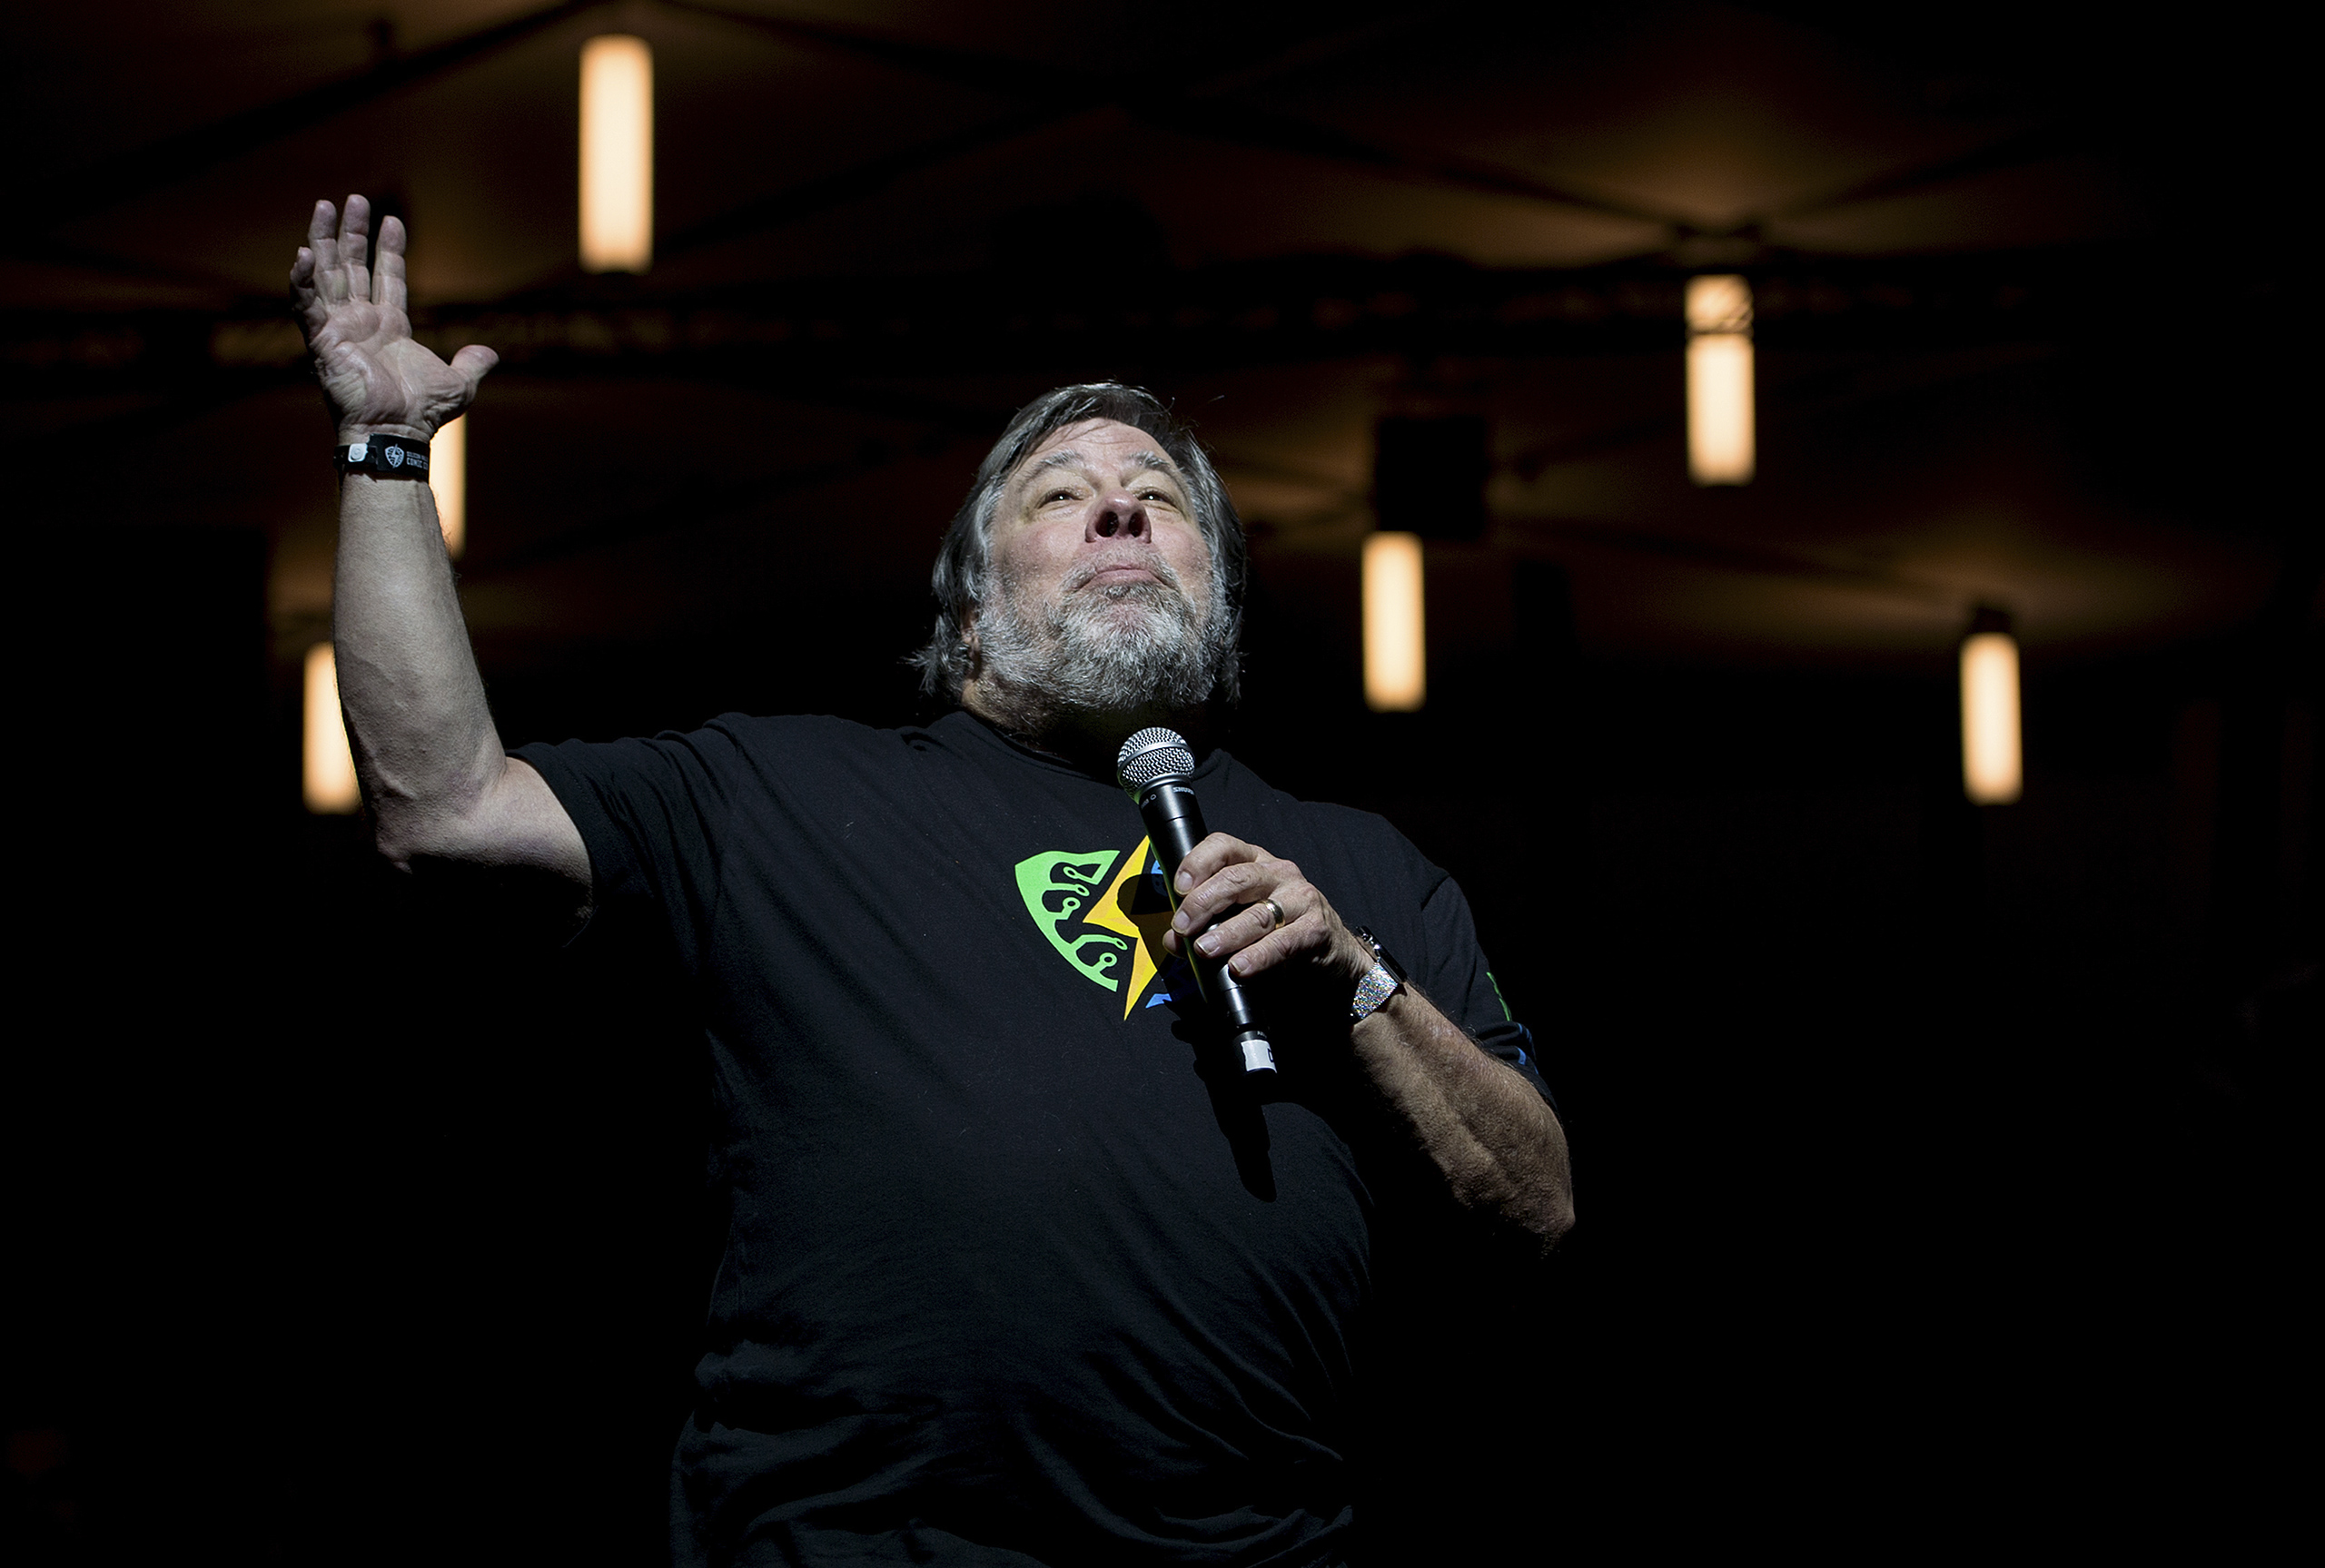 Steve Wozniak speaks during the Silicon Valley Comic Con in San Jose, Calif., March 18, 2016.